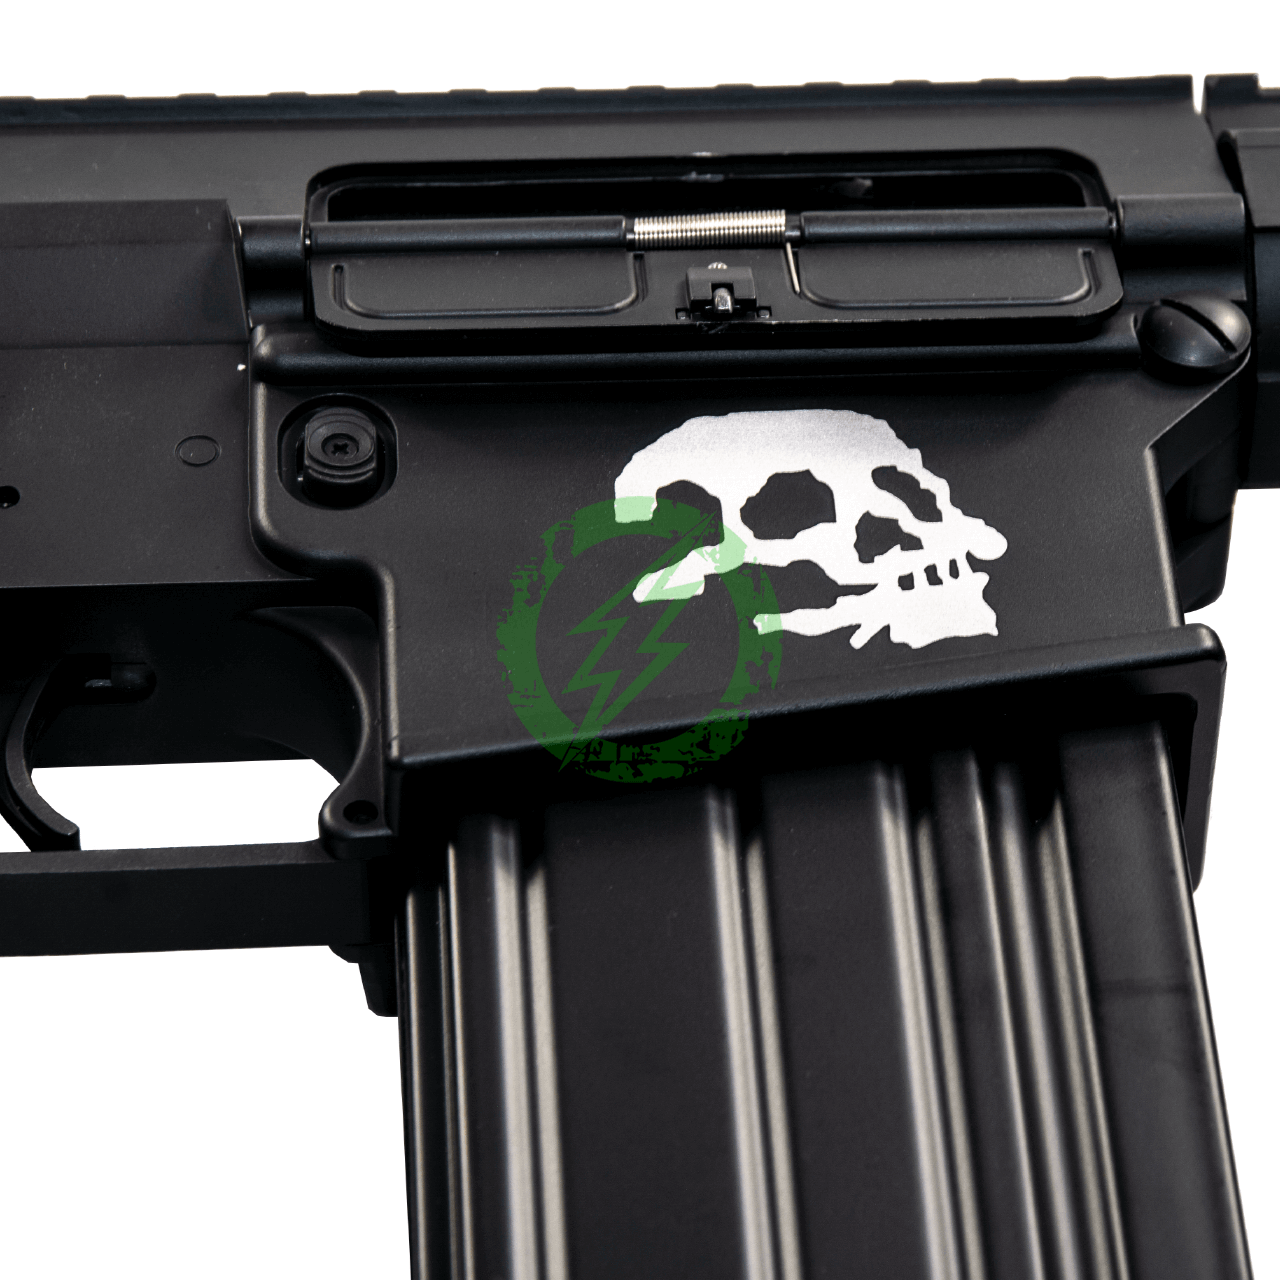 A&K Full Metal SR-25 Airsoft AEG Rifle | Zombie Killer Edition skull